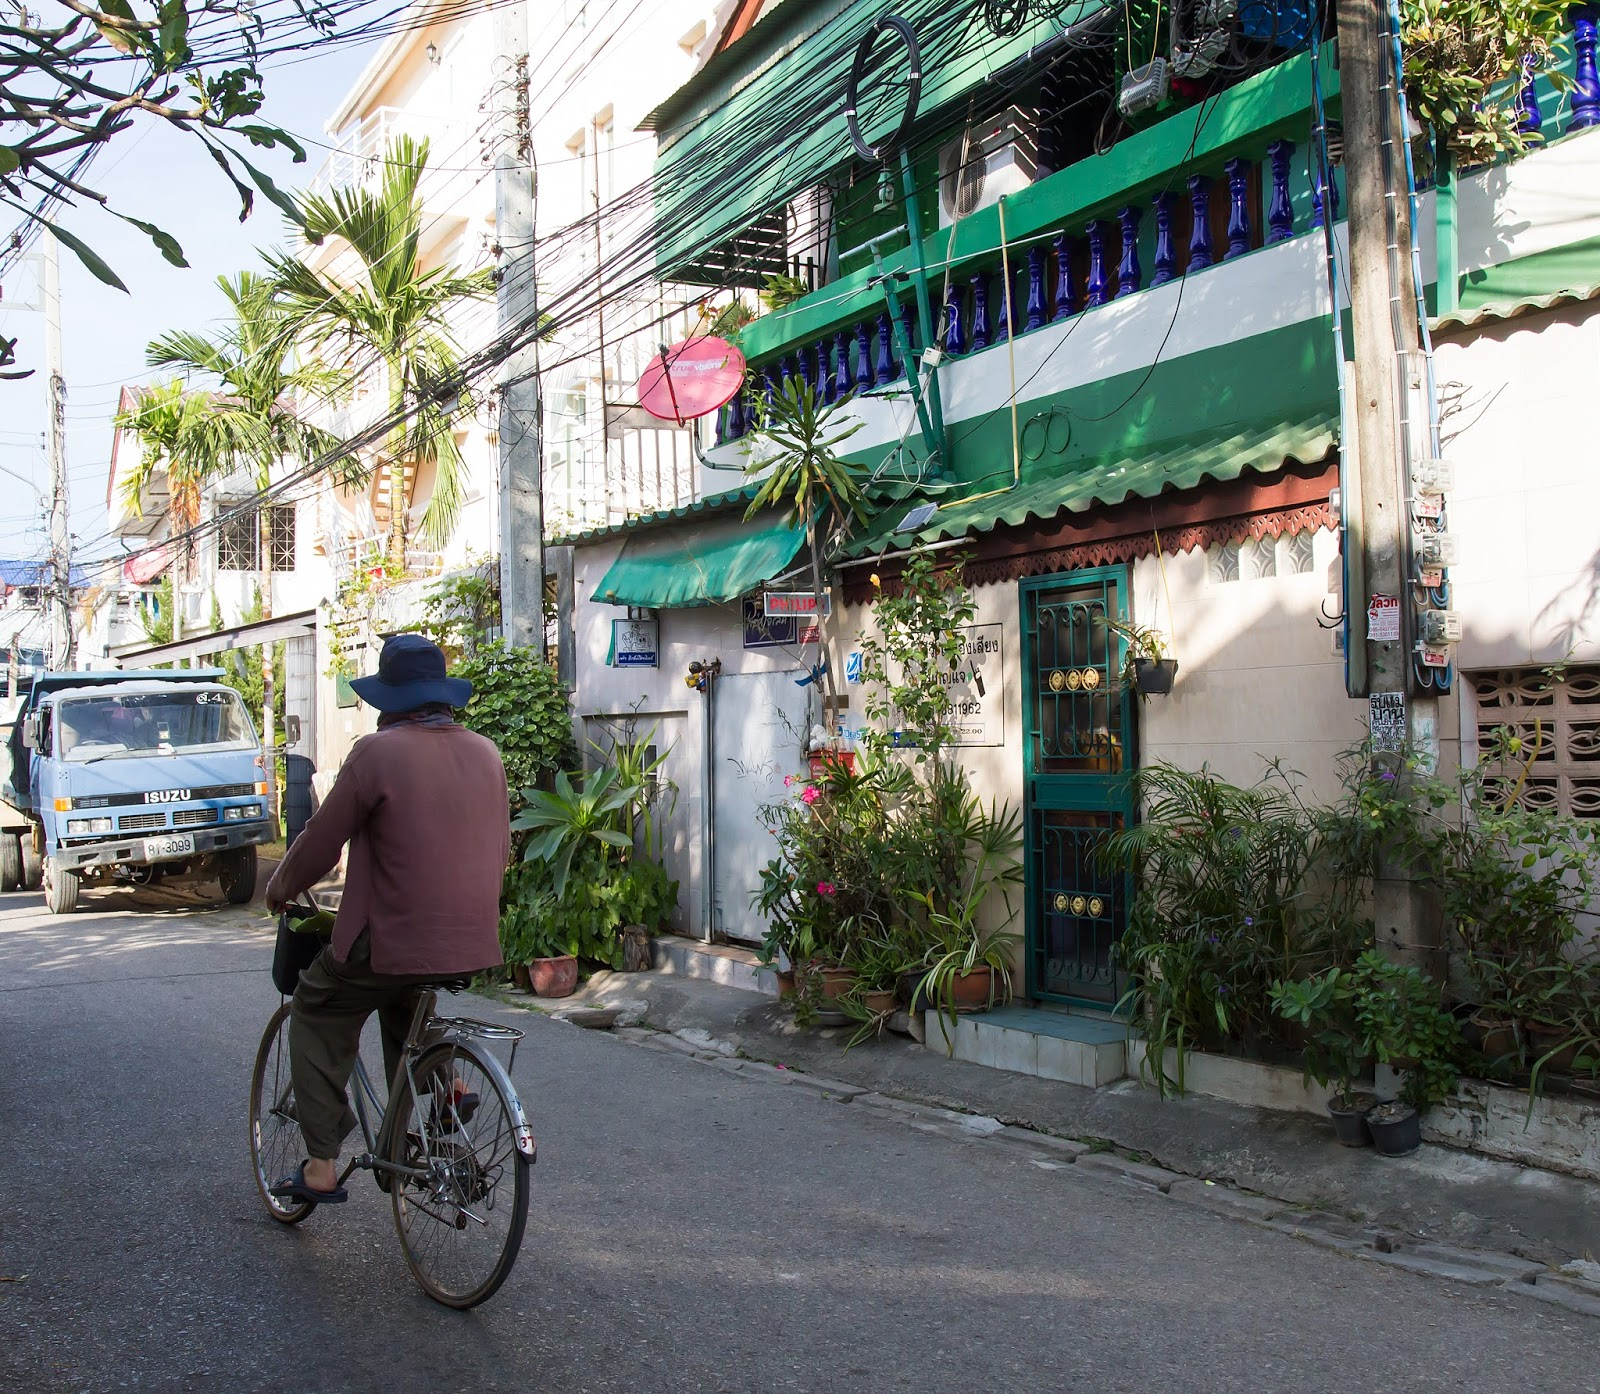 in the backstreets of Chiang Mai's old town